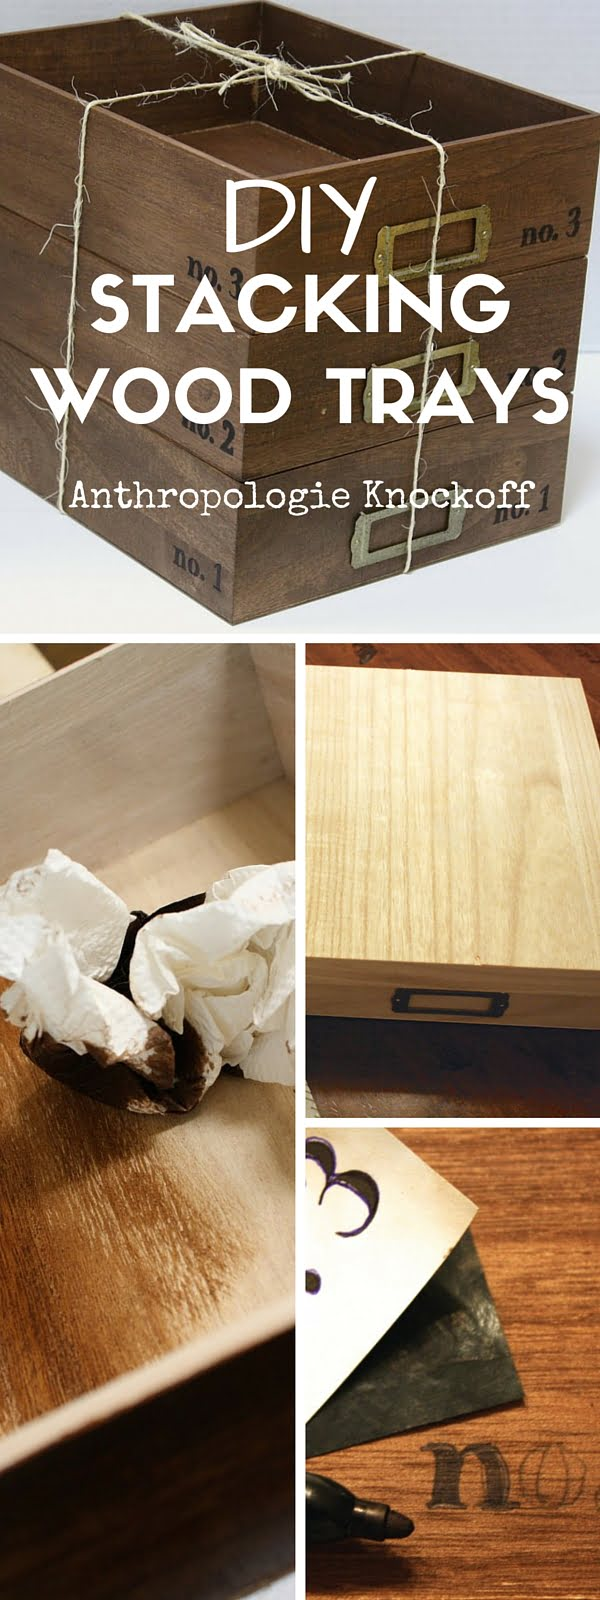 Check out the tutorial:  Anthropologie Stacking Wood Trays Knockoff